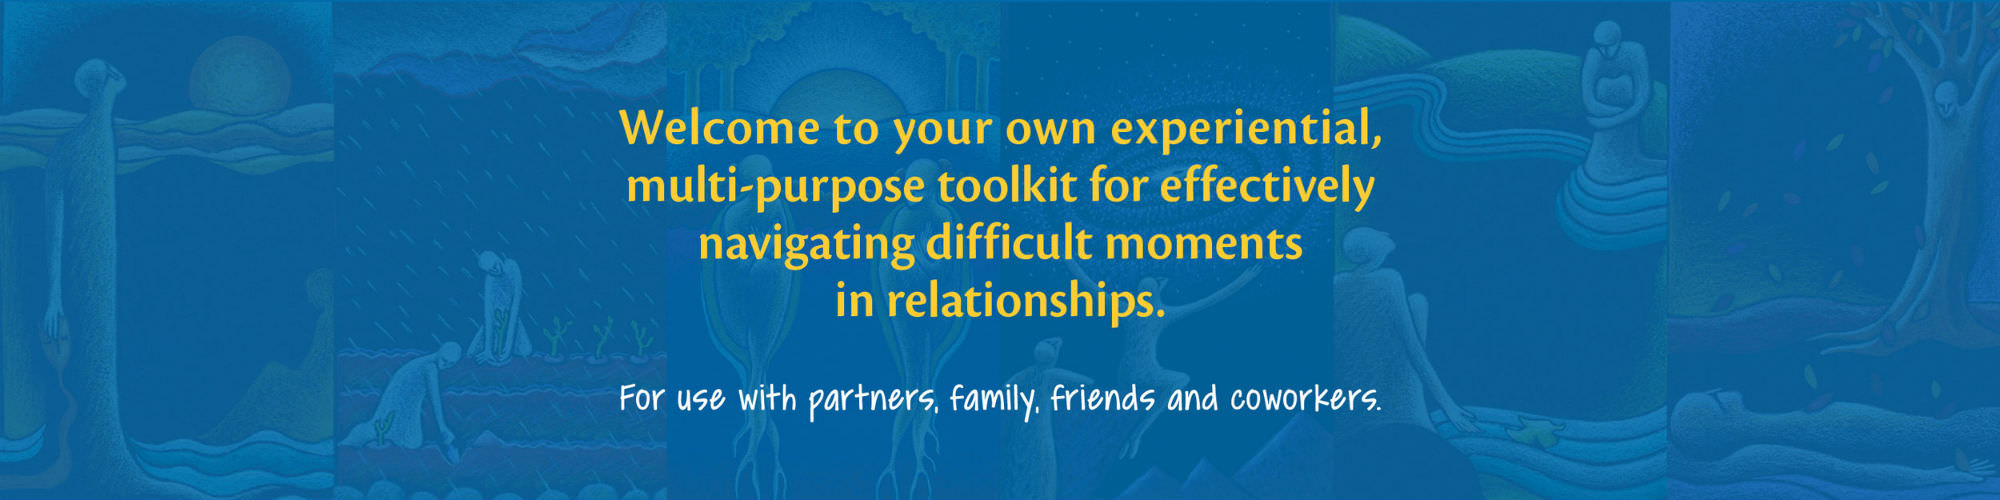 Relationship Help (Fix Relationship Problems) with this Toolkit!